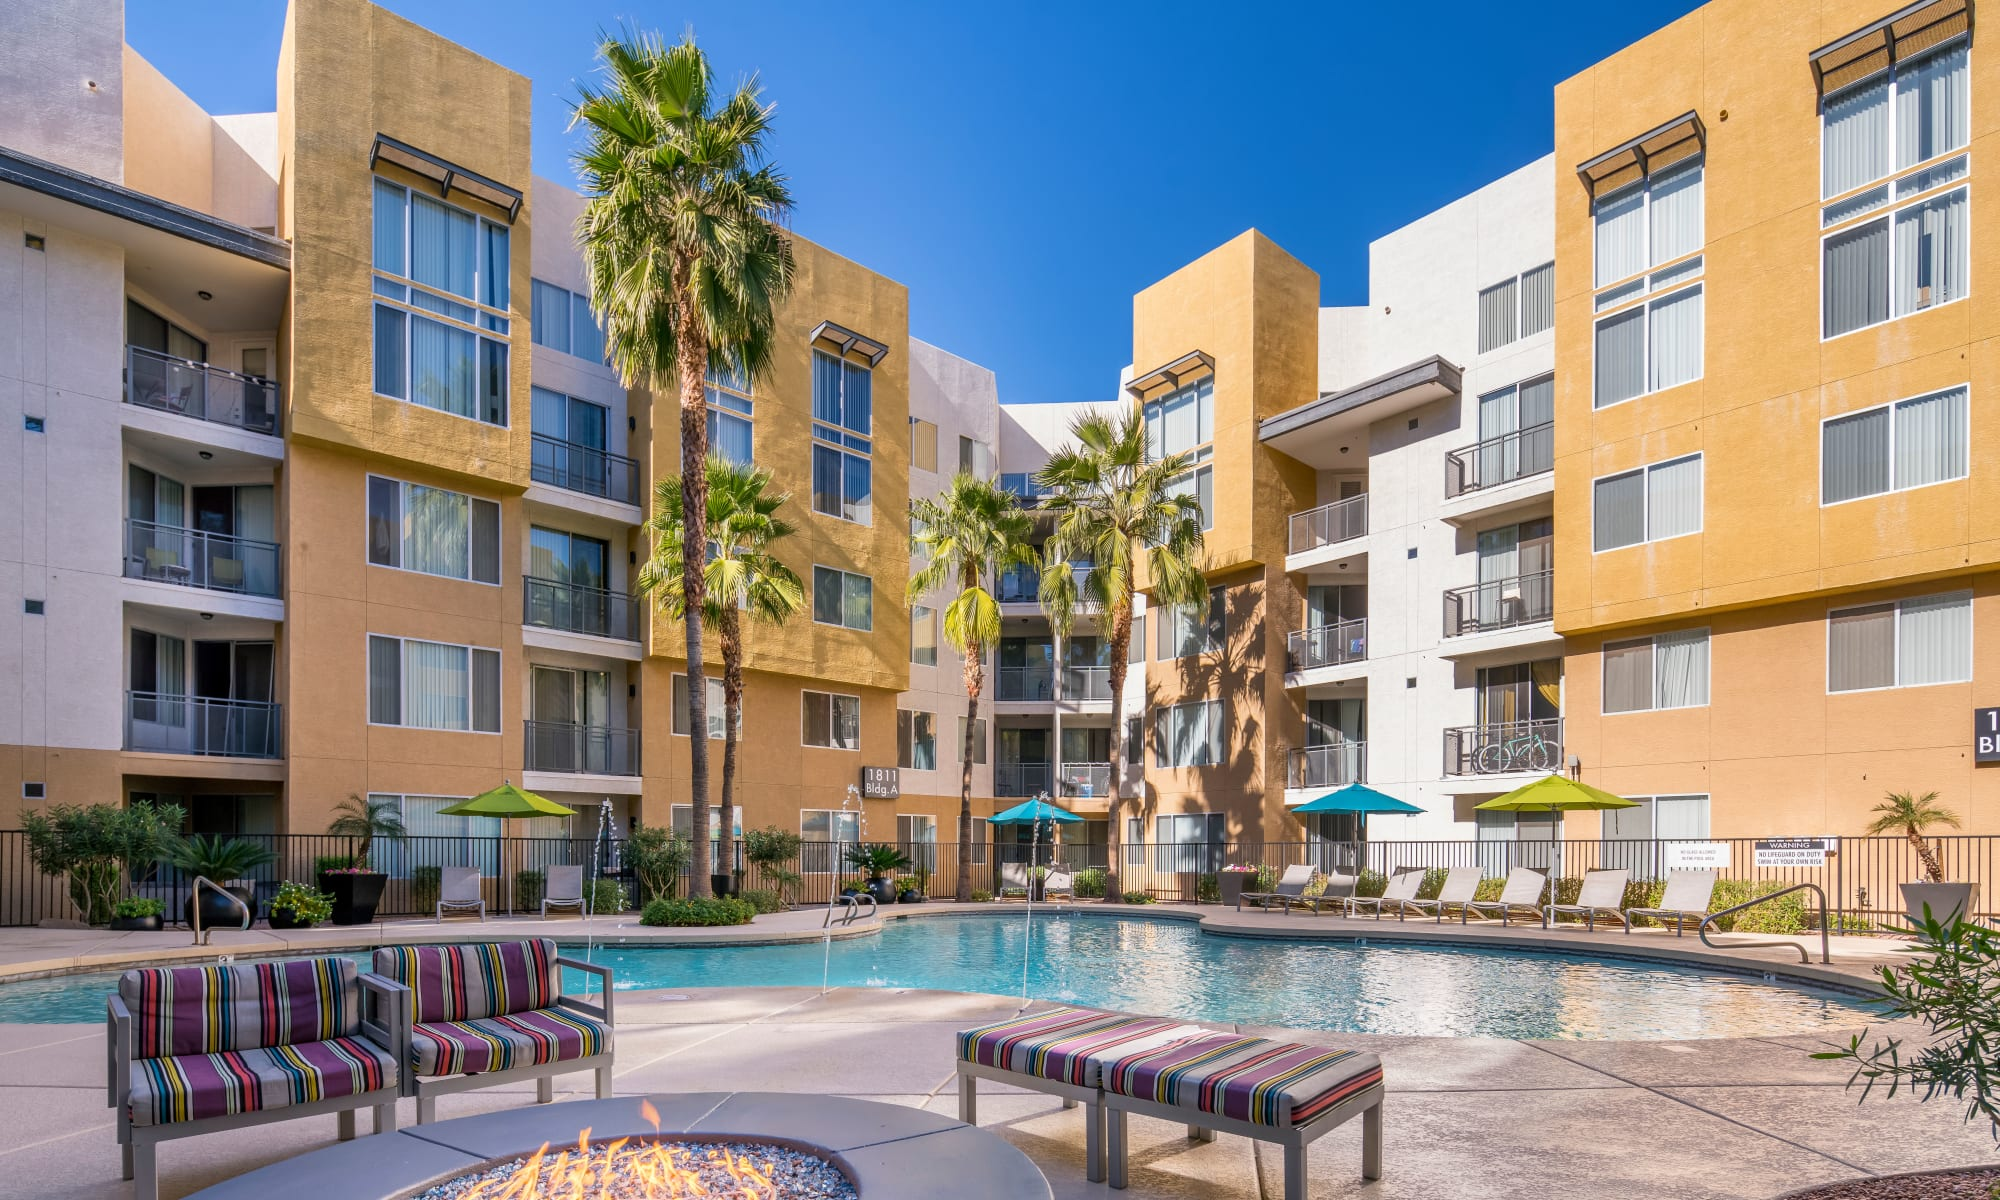 Apartments at Tempe Metro in Tempe, Arizona